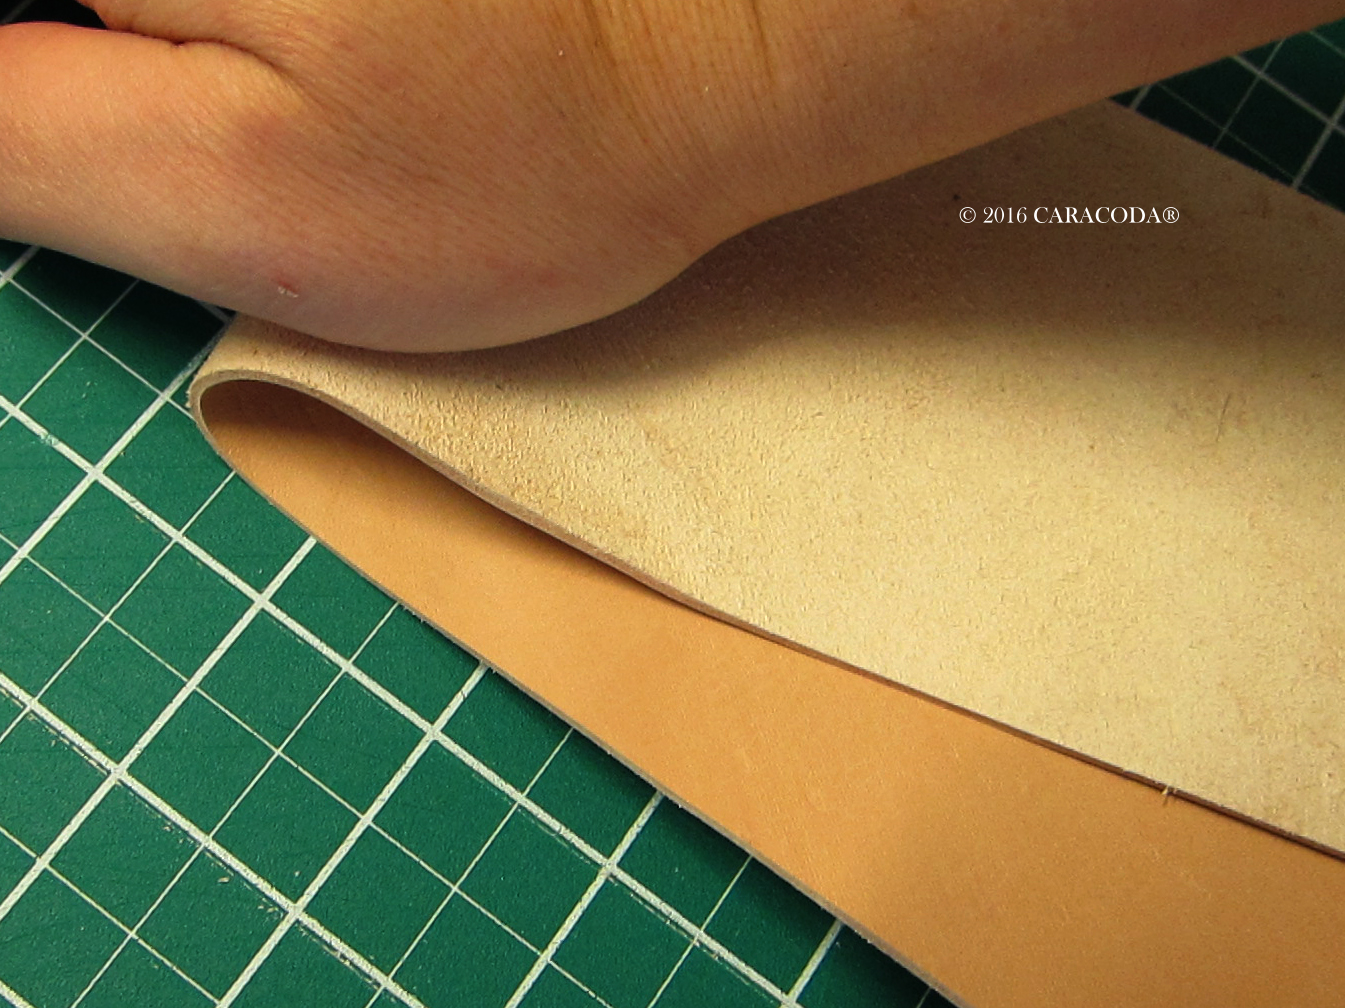 Picture of Preparing the Leather